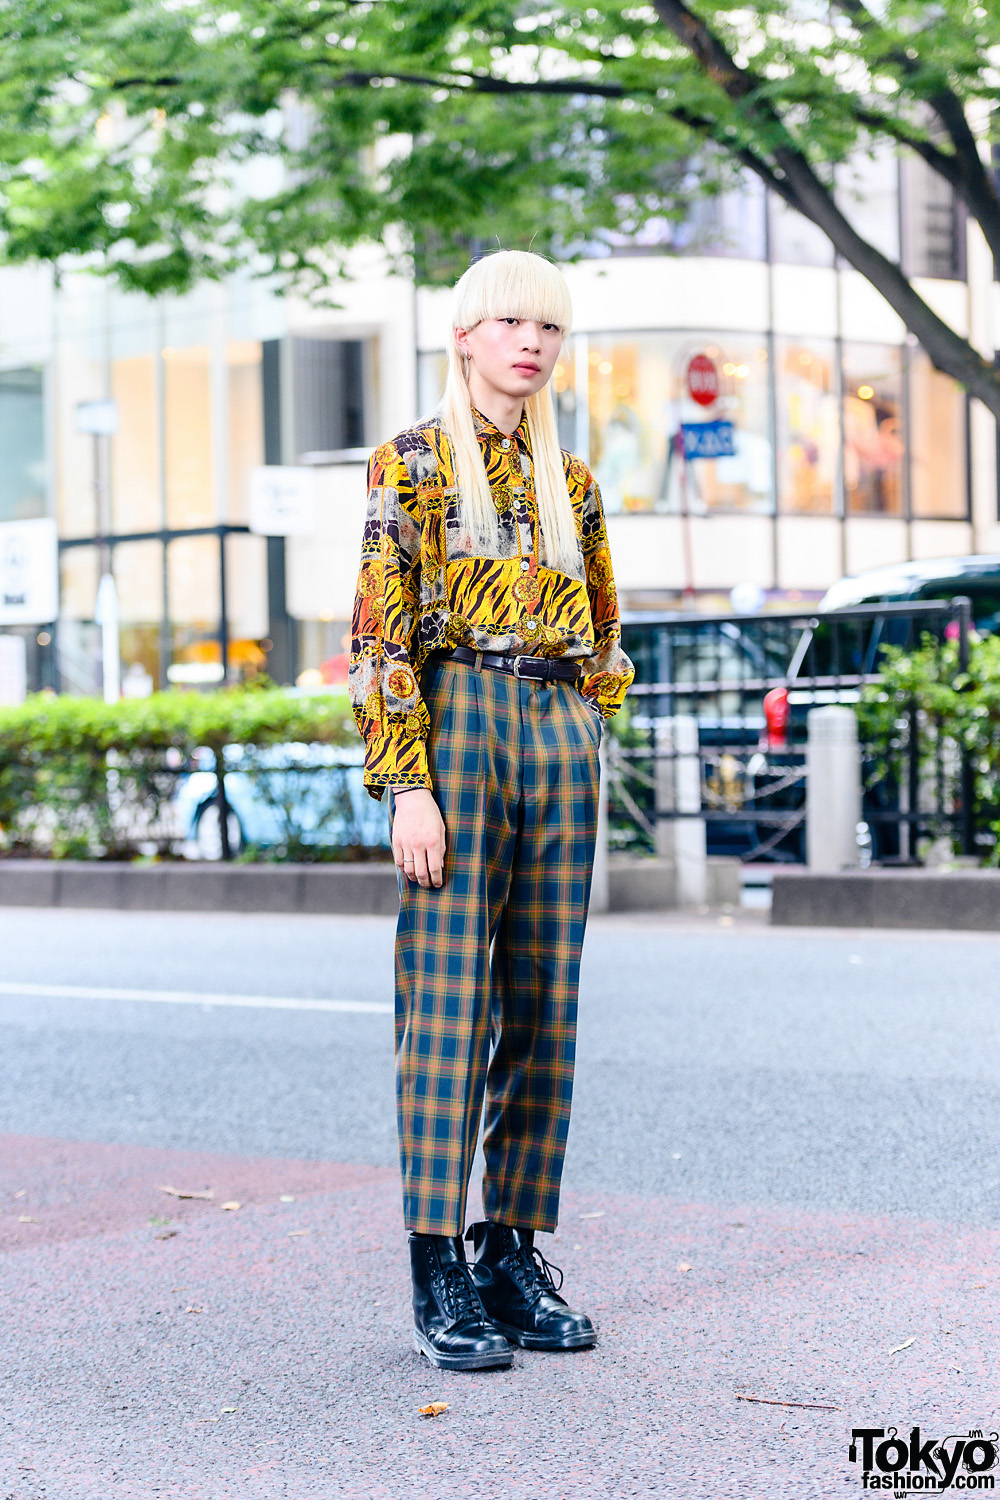 Print-on-Print Look in Harajuku w/ Blonde Ultra Mullet, Leather Belt, Abstract Print Shirt, Plaid Pants & Dr. Martens Boots